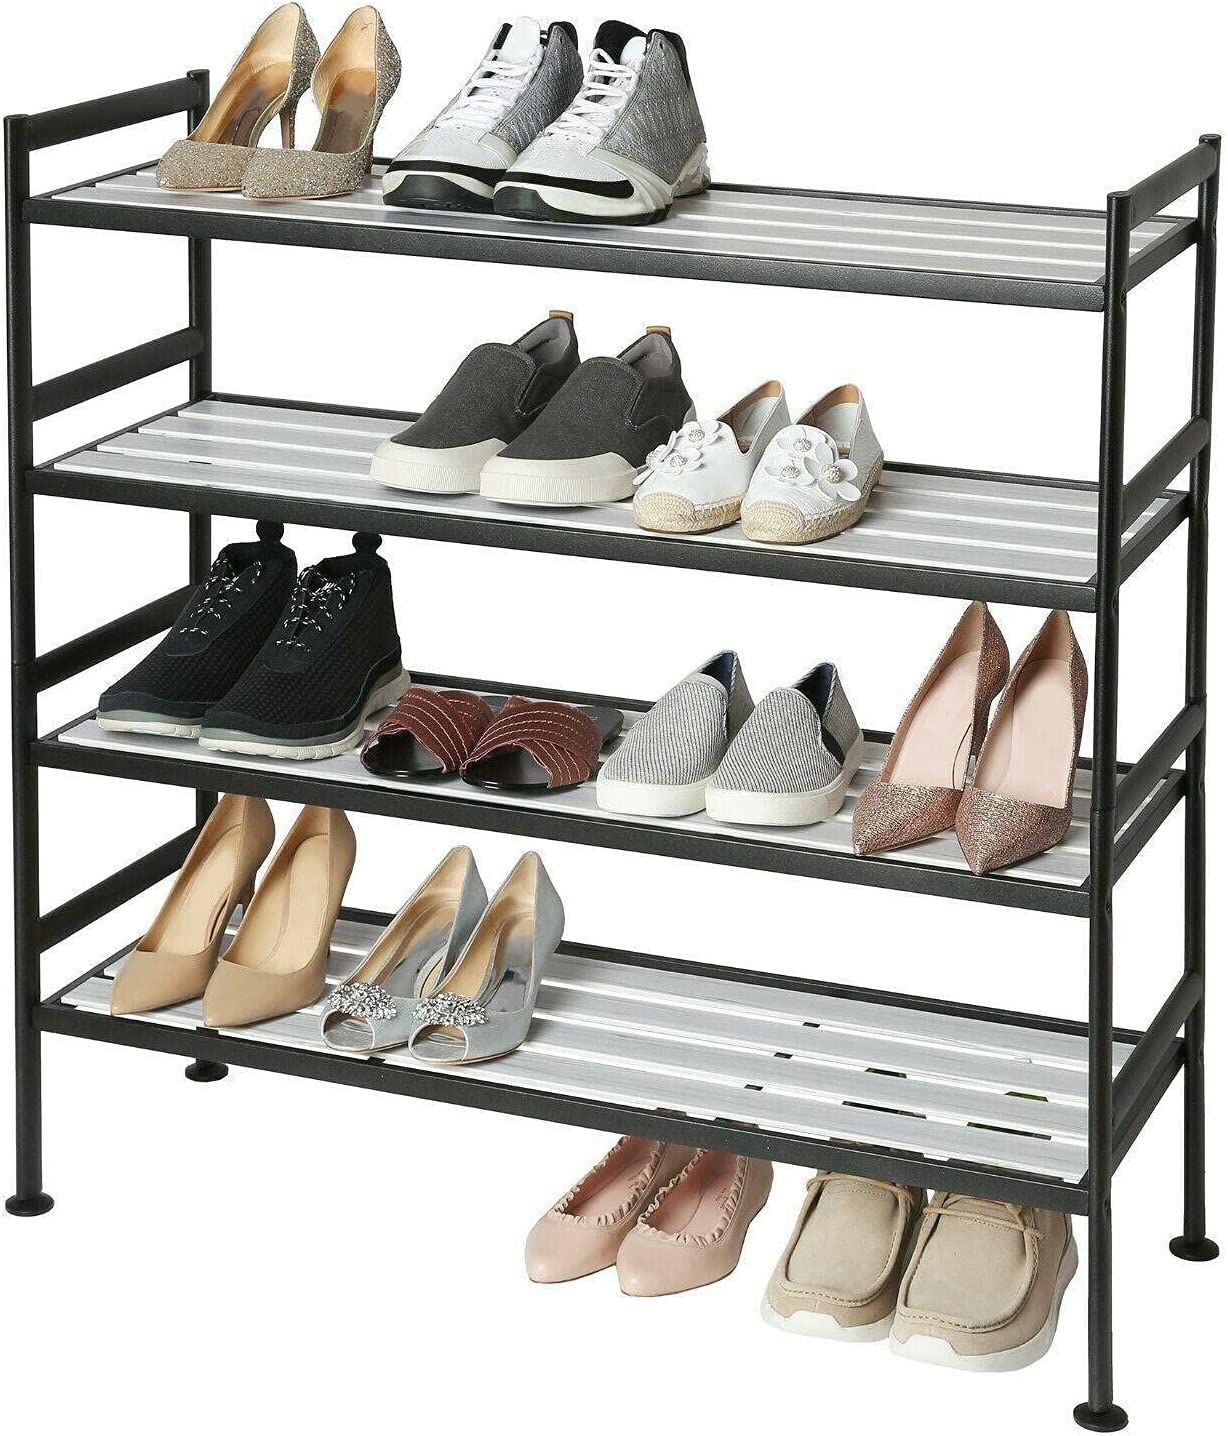 2-PACK STACKING SHOE RACK ALPINE organizer ASH Shoe rack Super beauty product restock quality Louisville-Jefferson County Mall top f